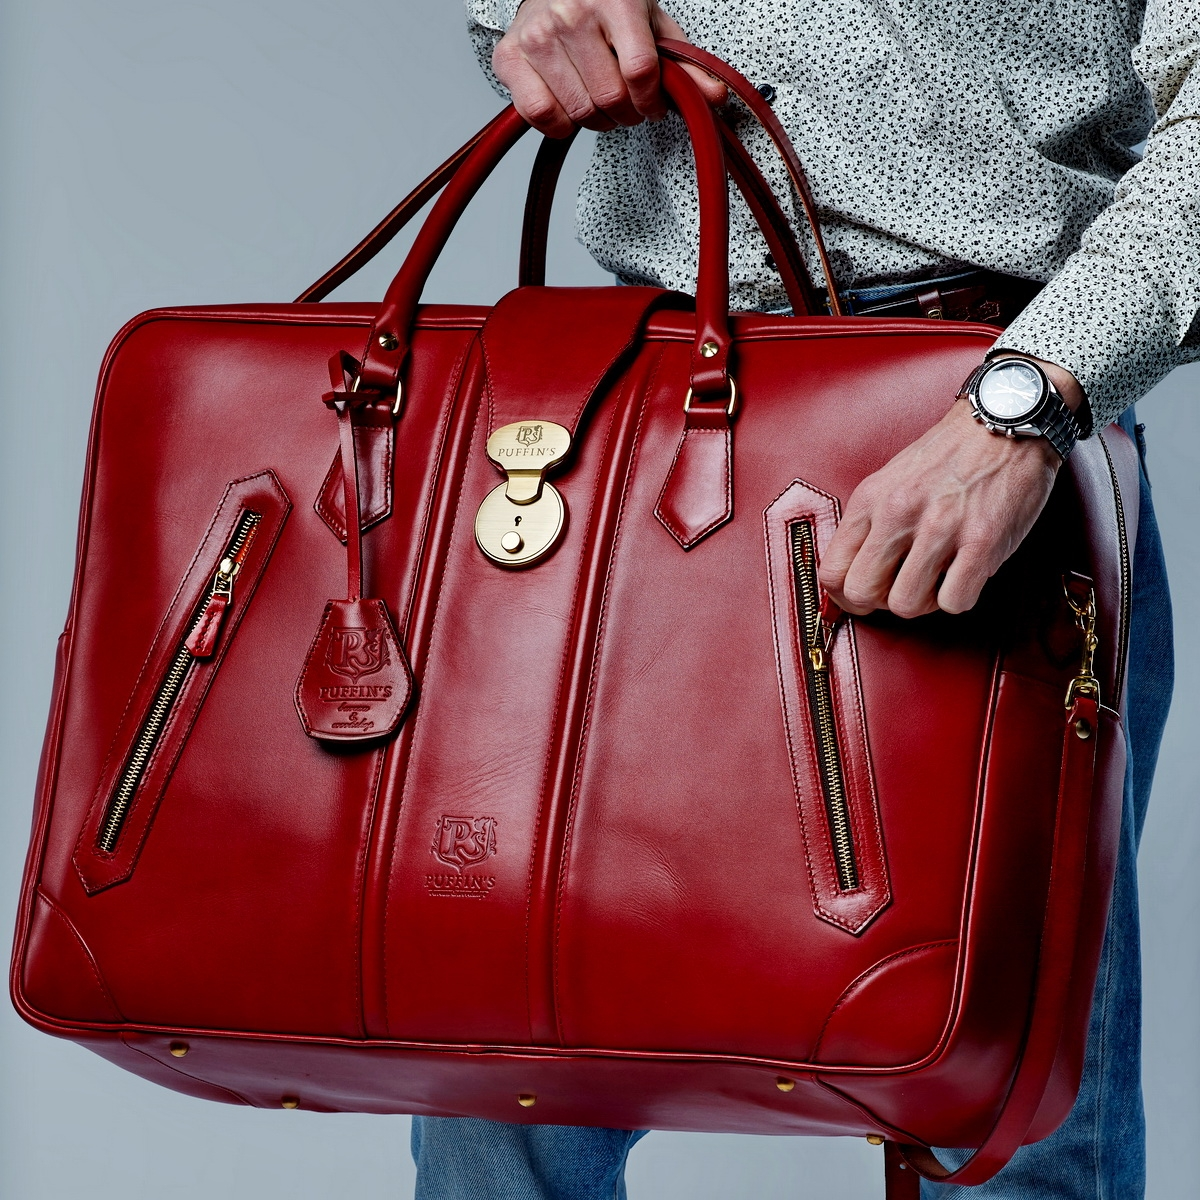 Leather suitcase HOLIDAY red currant